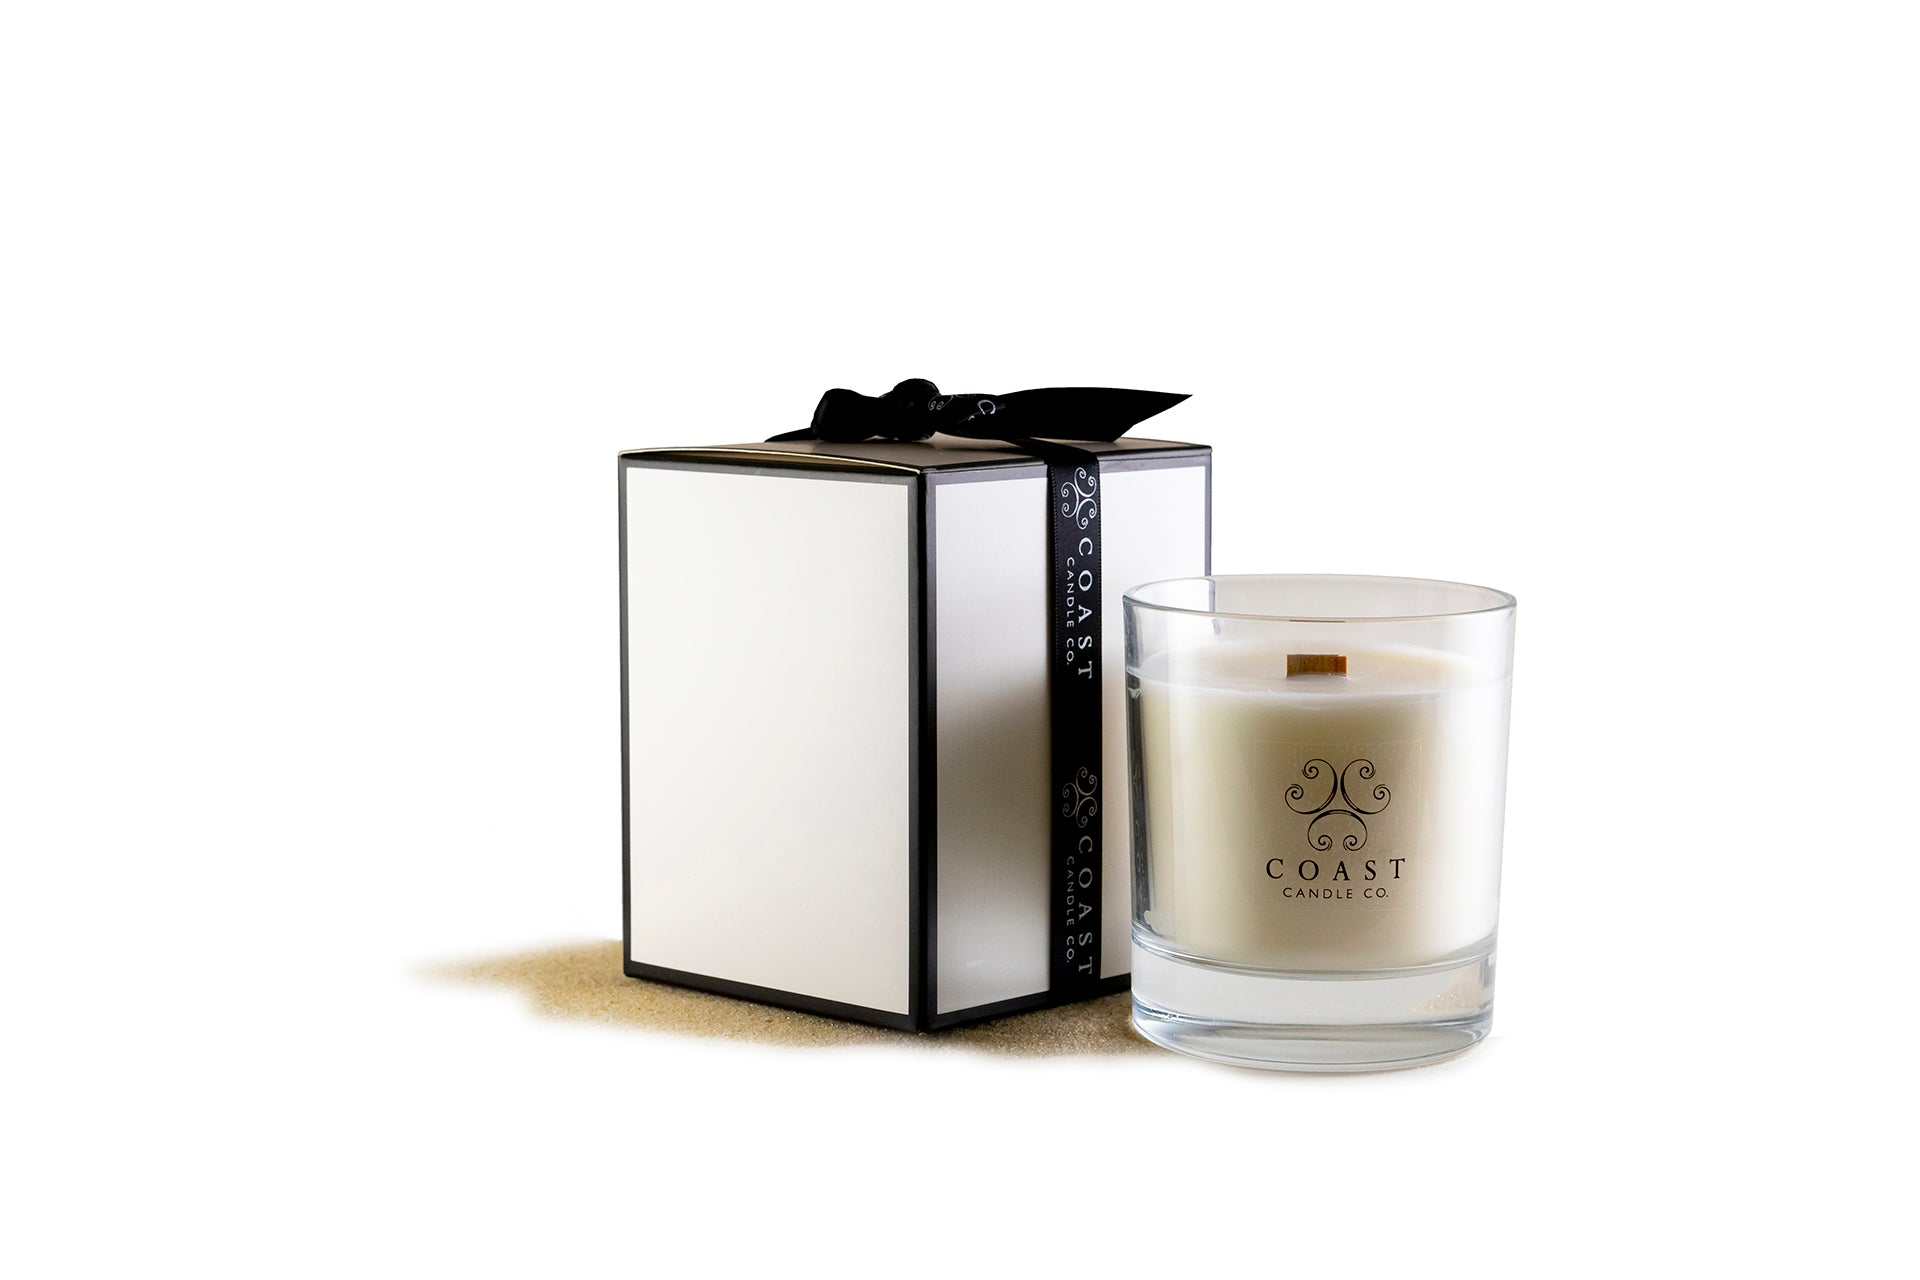 Coast Candle - Tumbler Candle - Sea Salt Lips